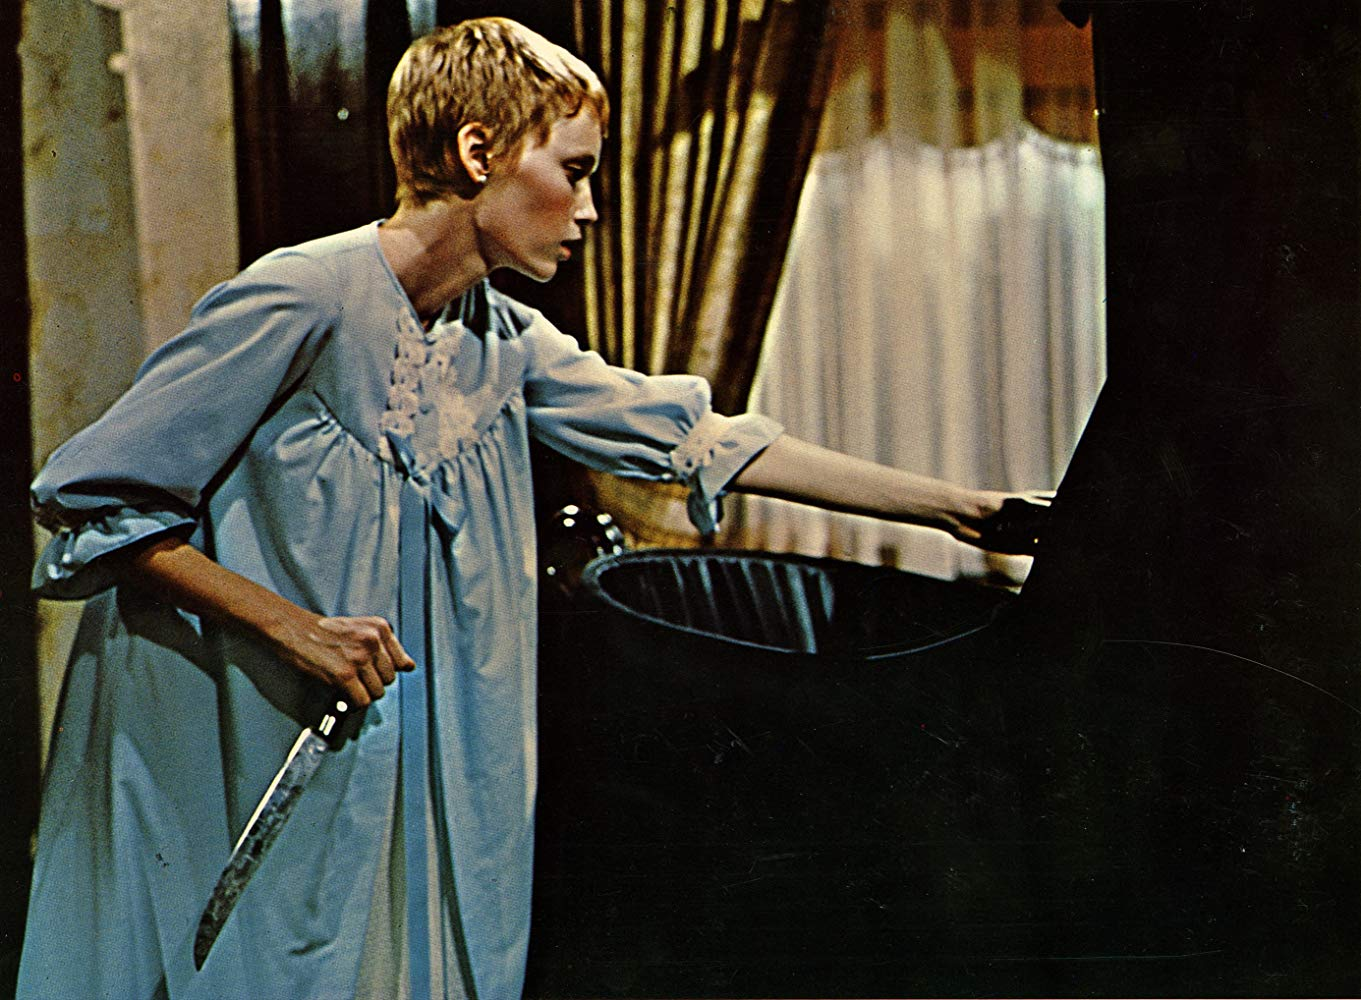 Stuck with Satan: Ira Levin, Rosemary's Baby and the Horror of Abuse